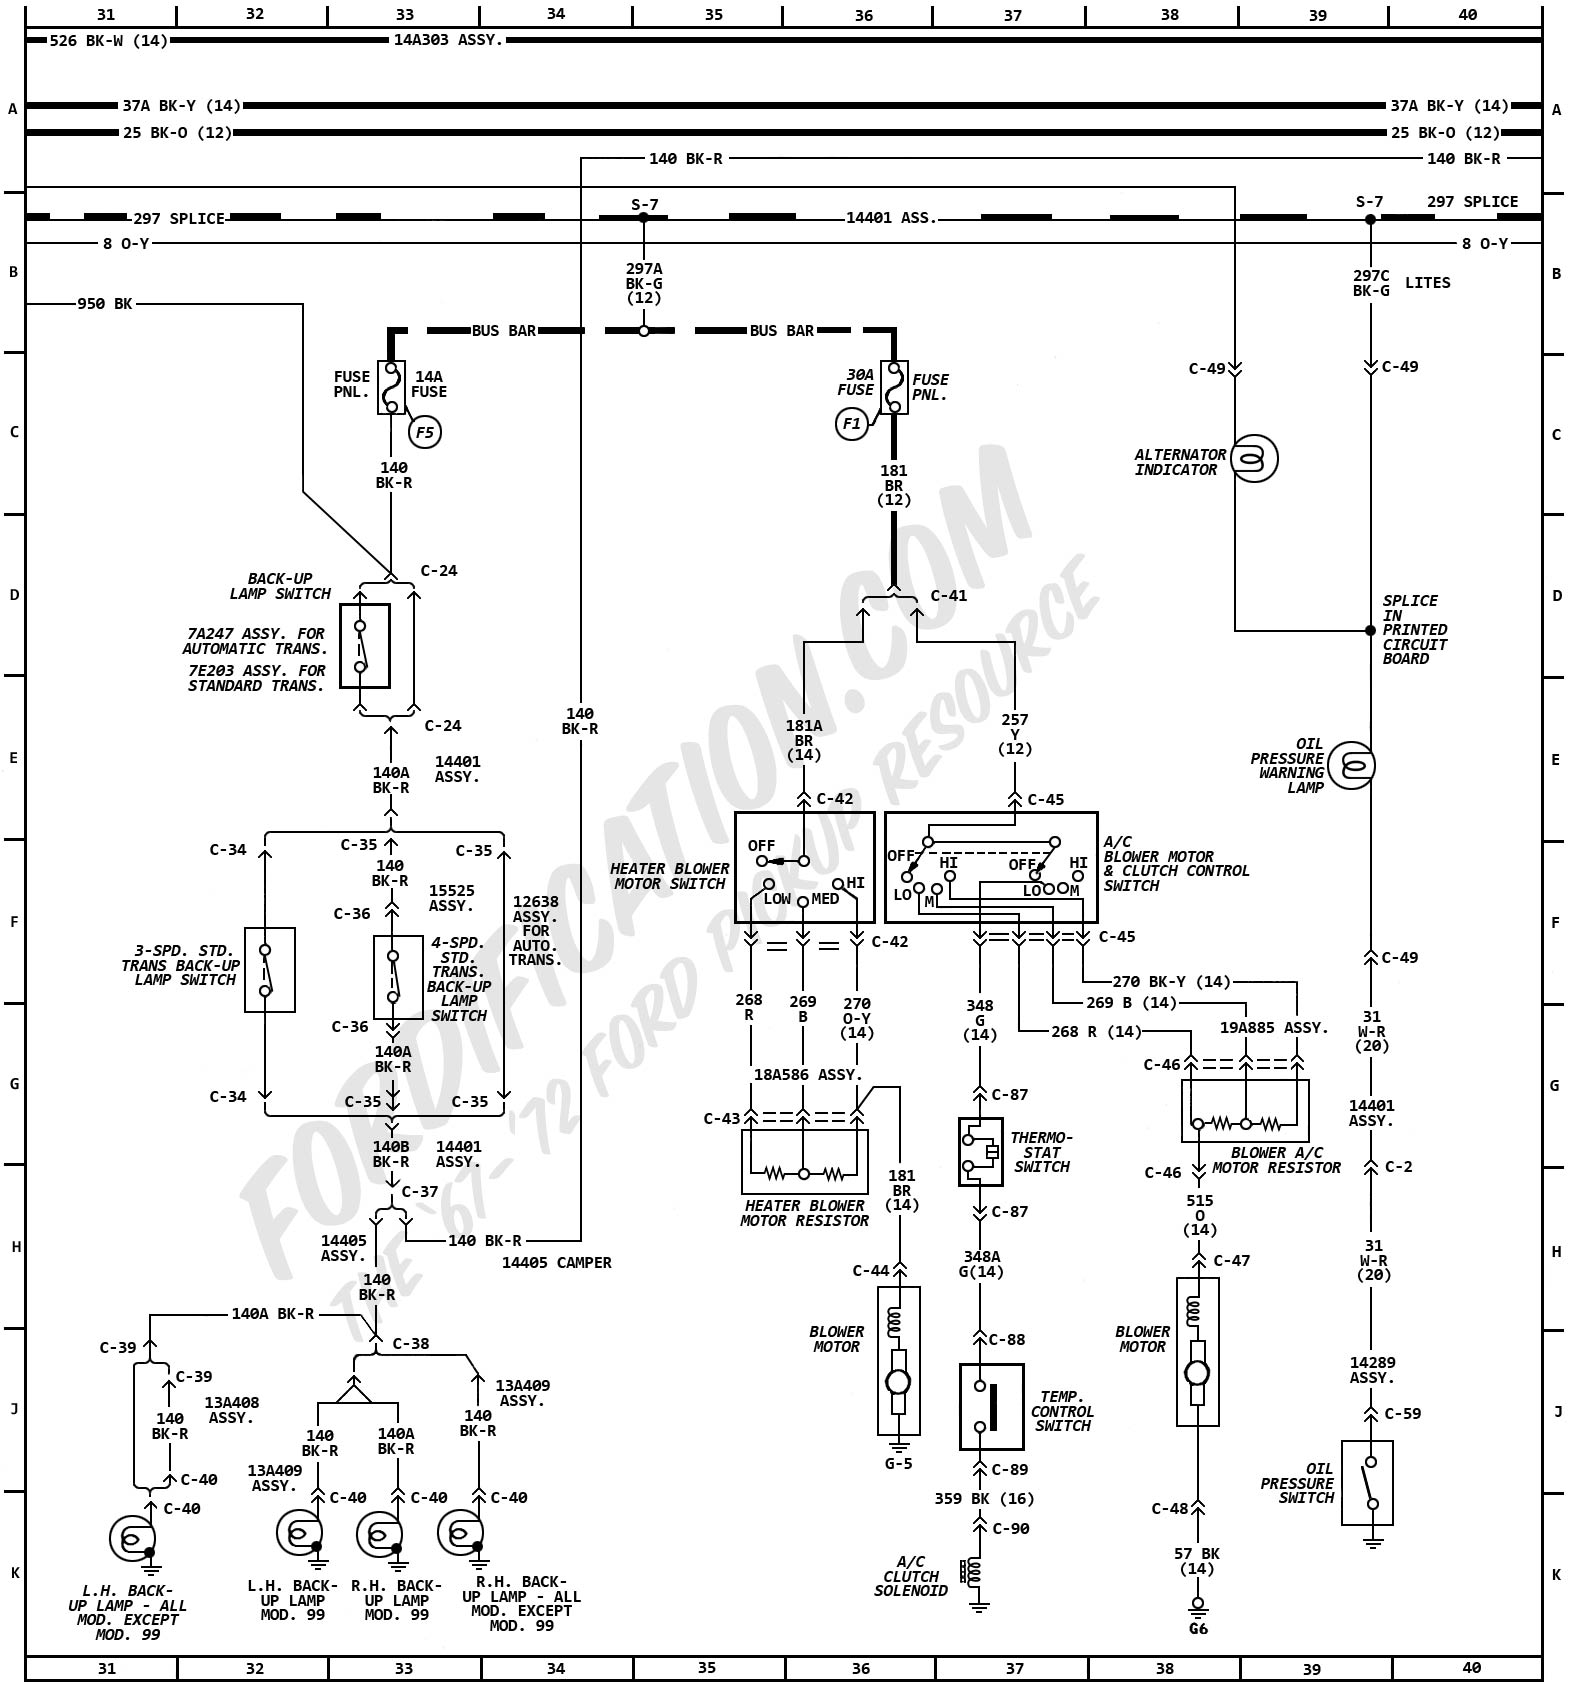 1972MasterWiring_04 1972 ford truck wiring diagrams fordification com wiring diagram for 2002 f750 ford truck at crackthecode.co